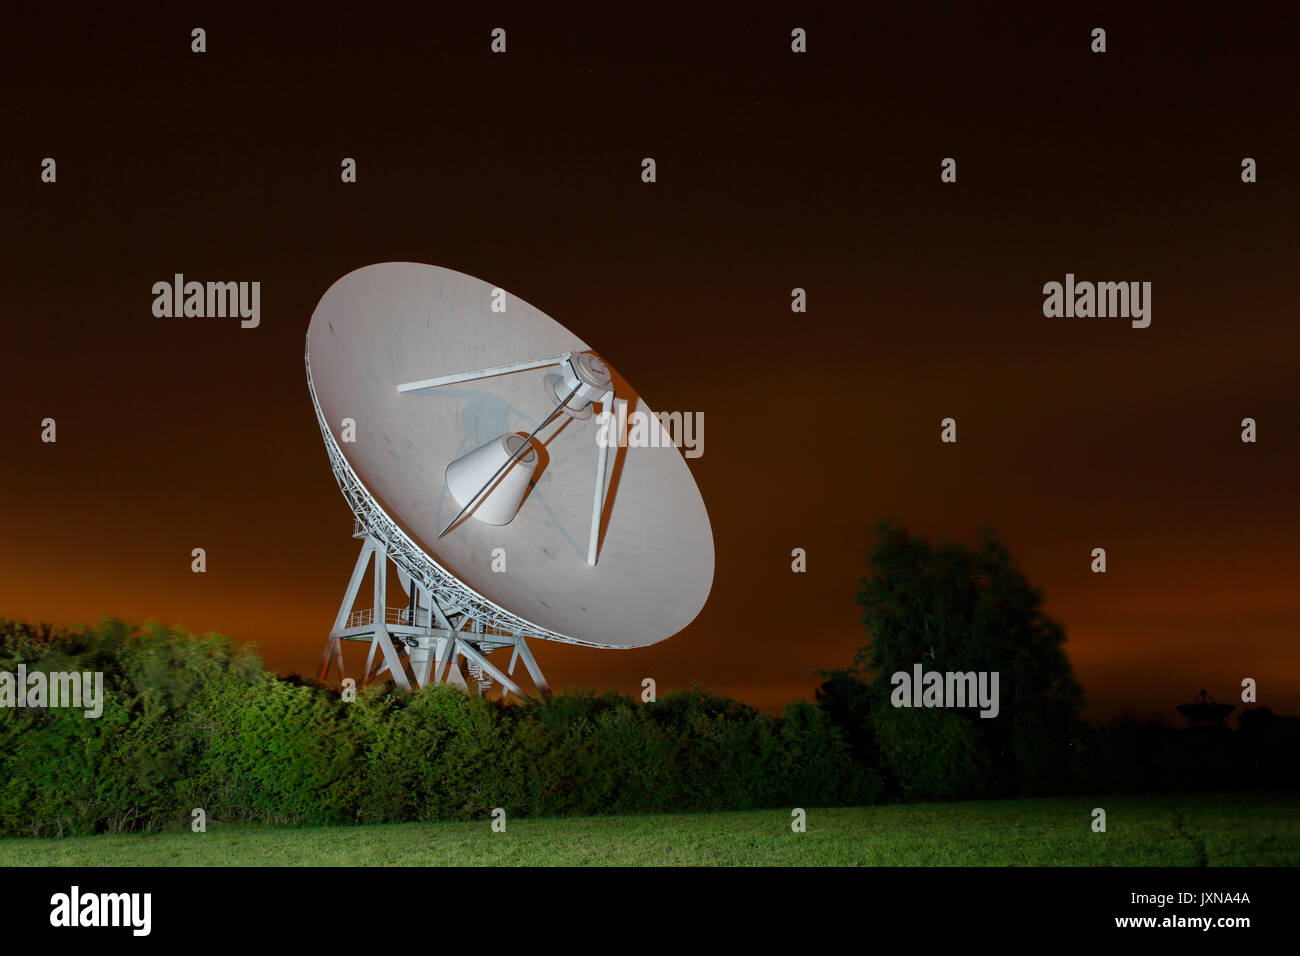 Multi Element Radio Linked Interferometer Network, MERLIN Radio telescope at the Mullard Radio Observatory at night - Stock Image